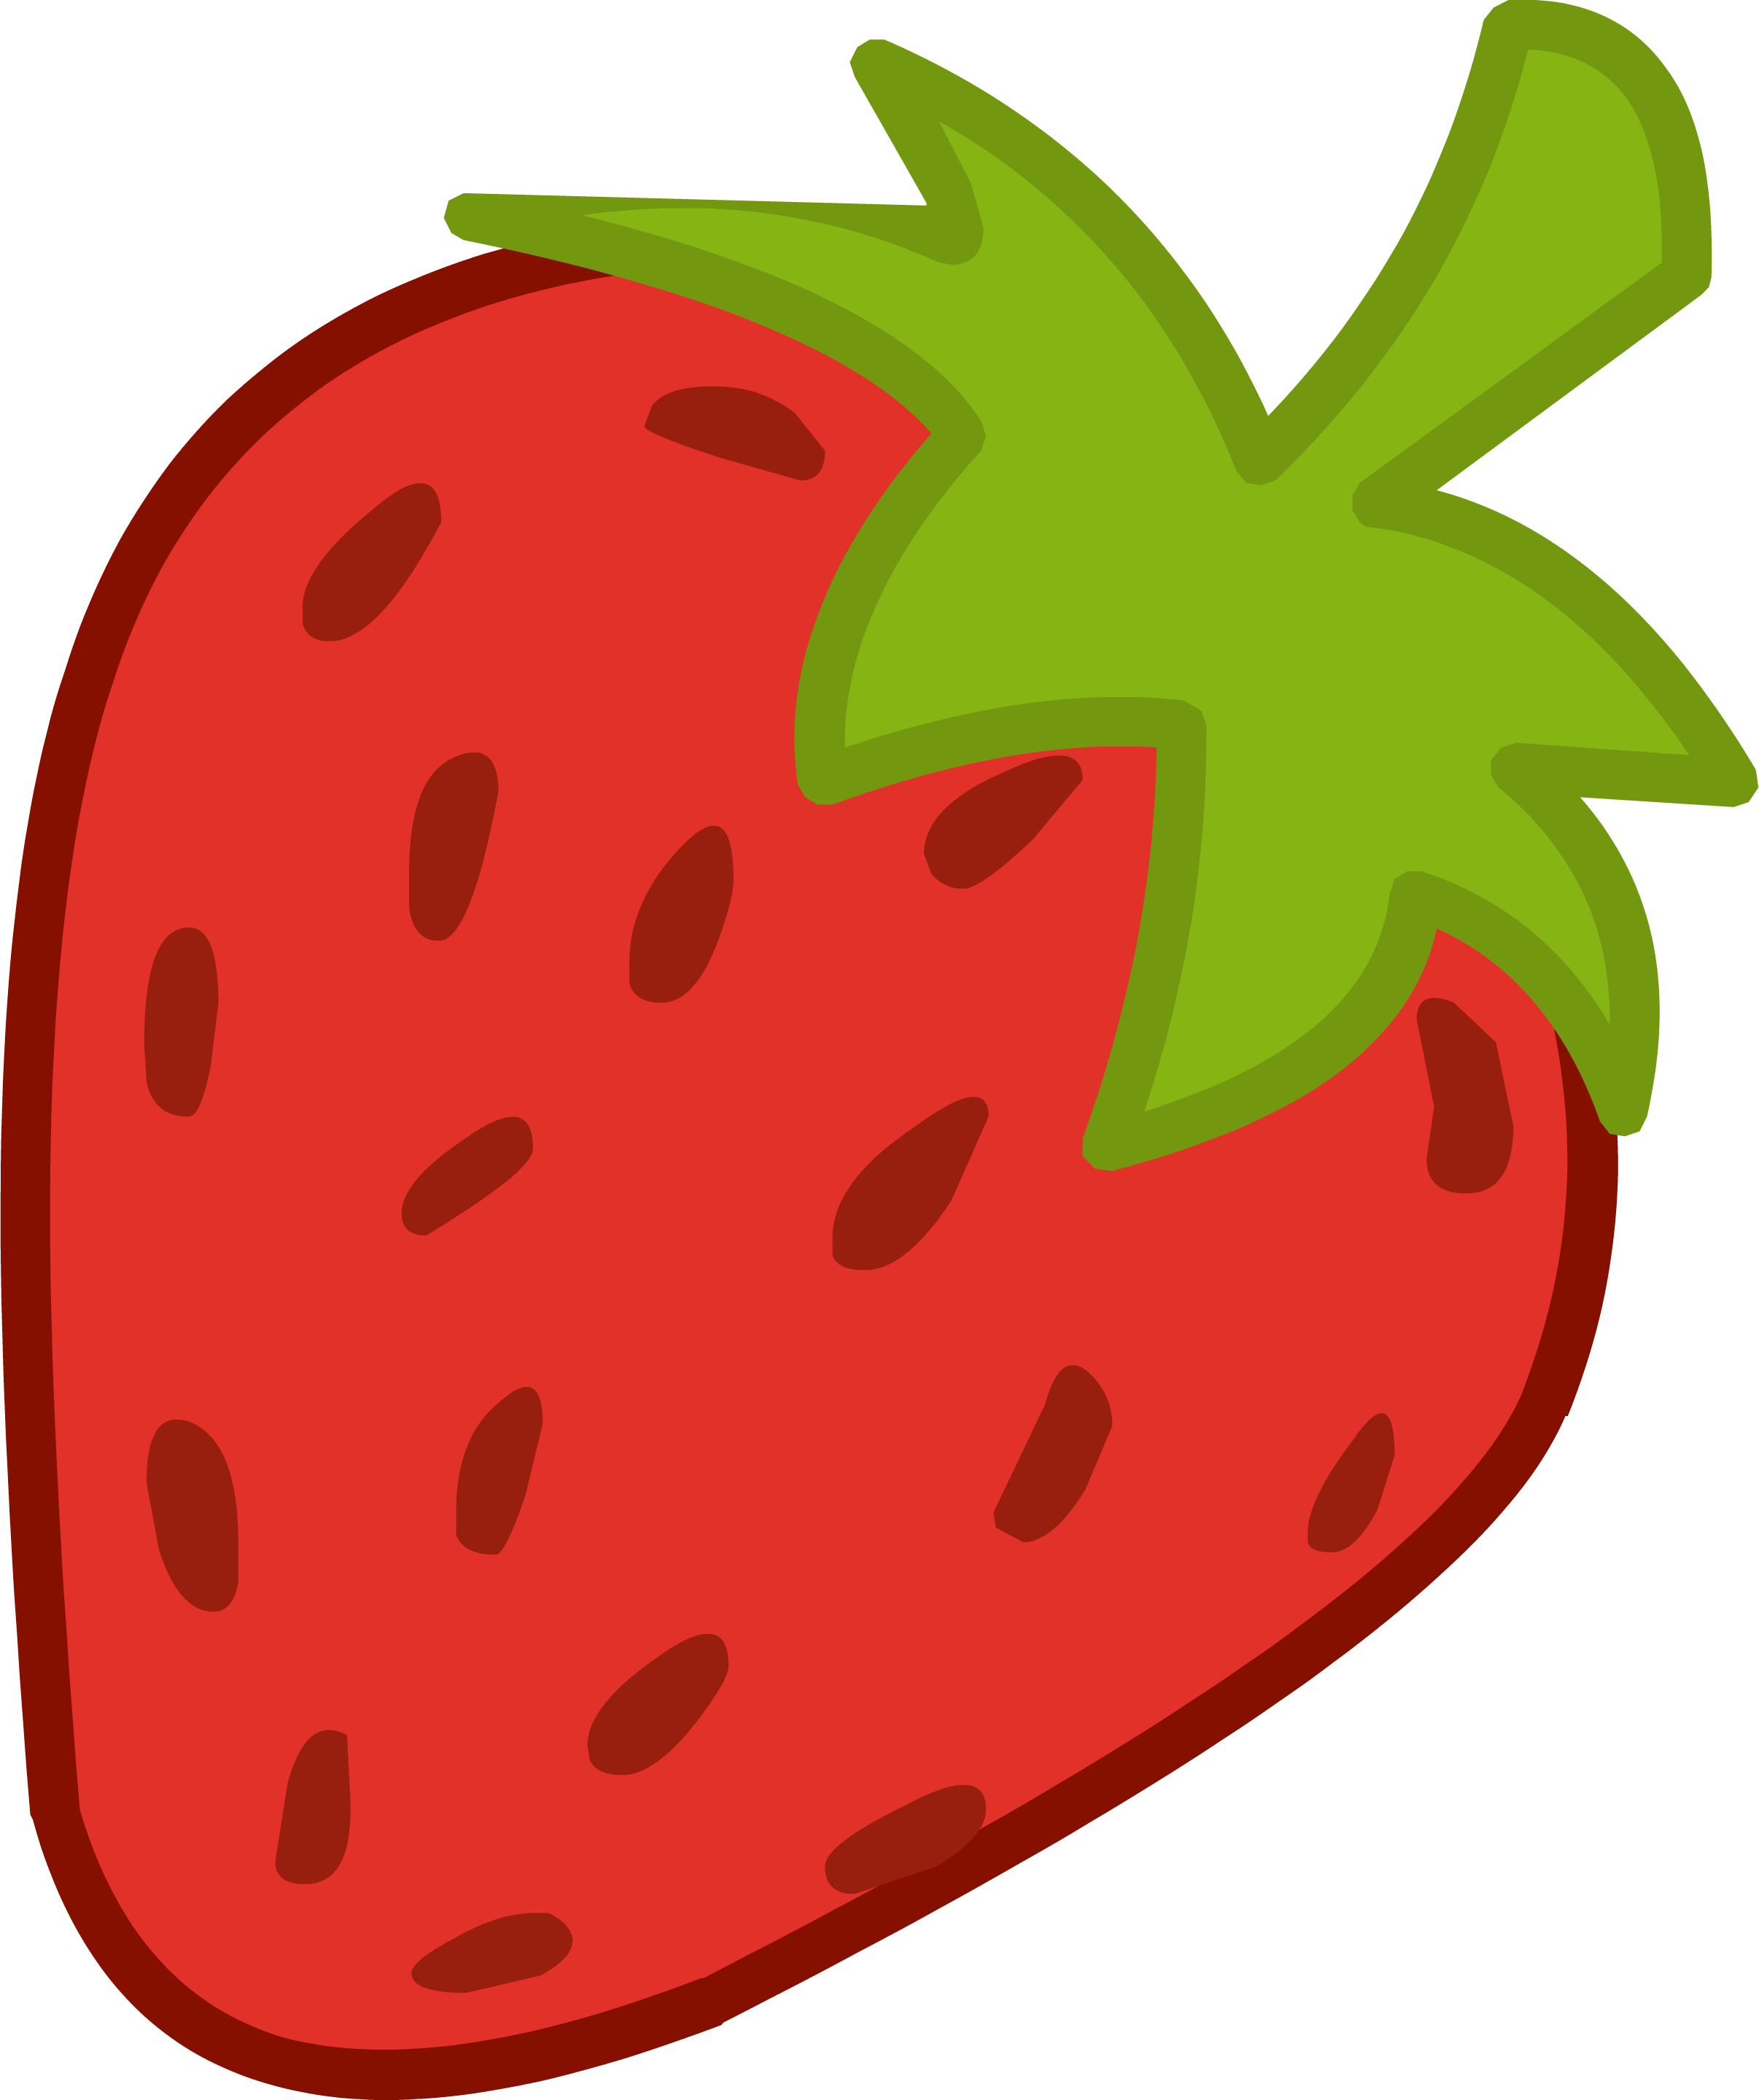 Apple Stem Clipart (89+ images in Collection) Page 1.